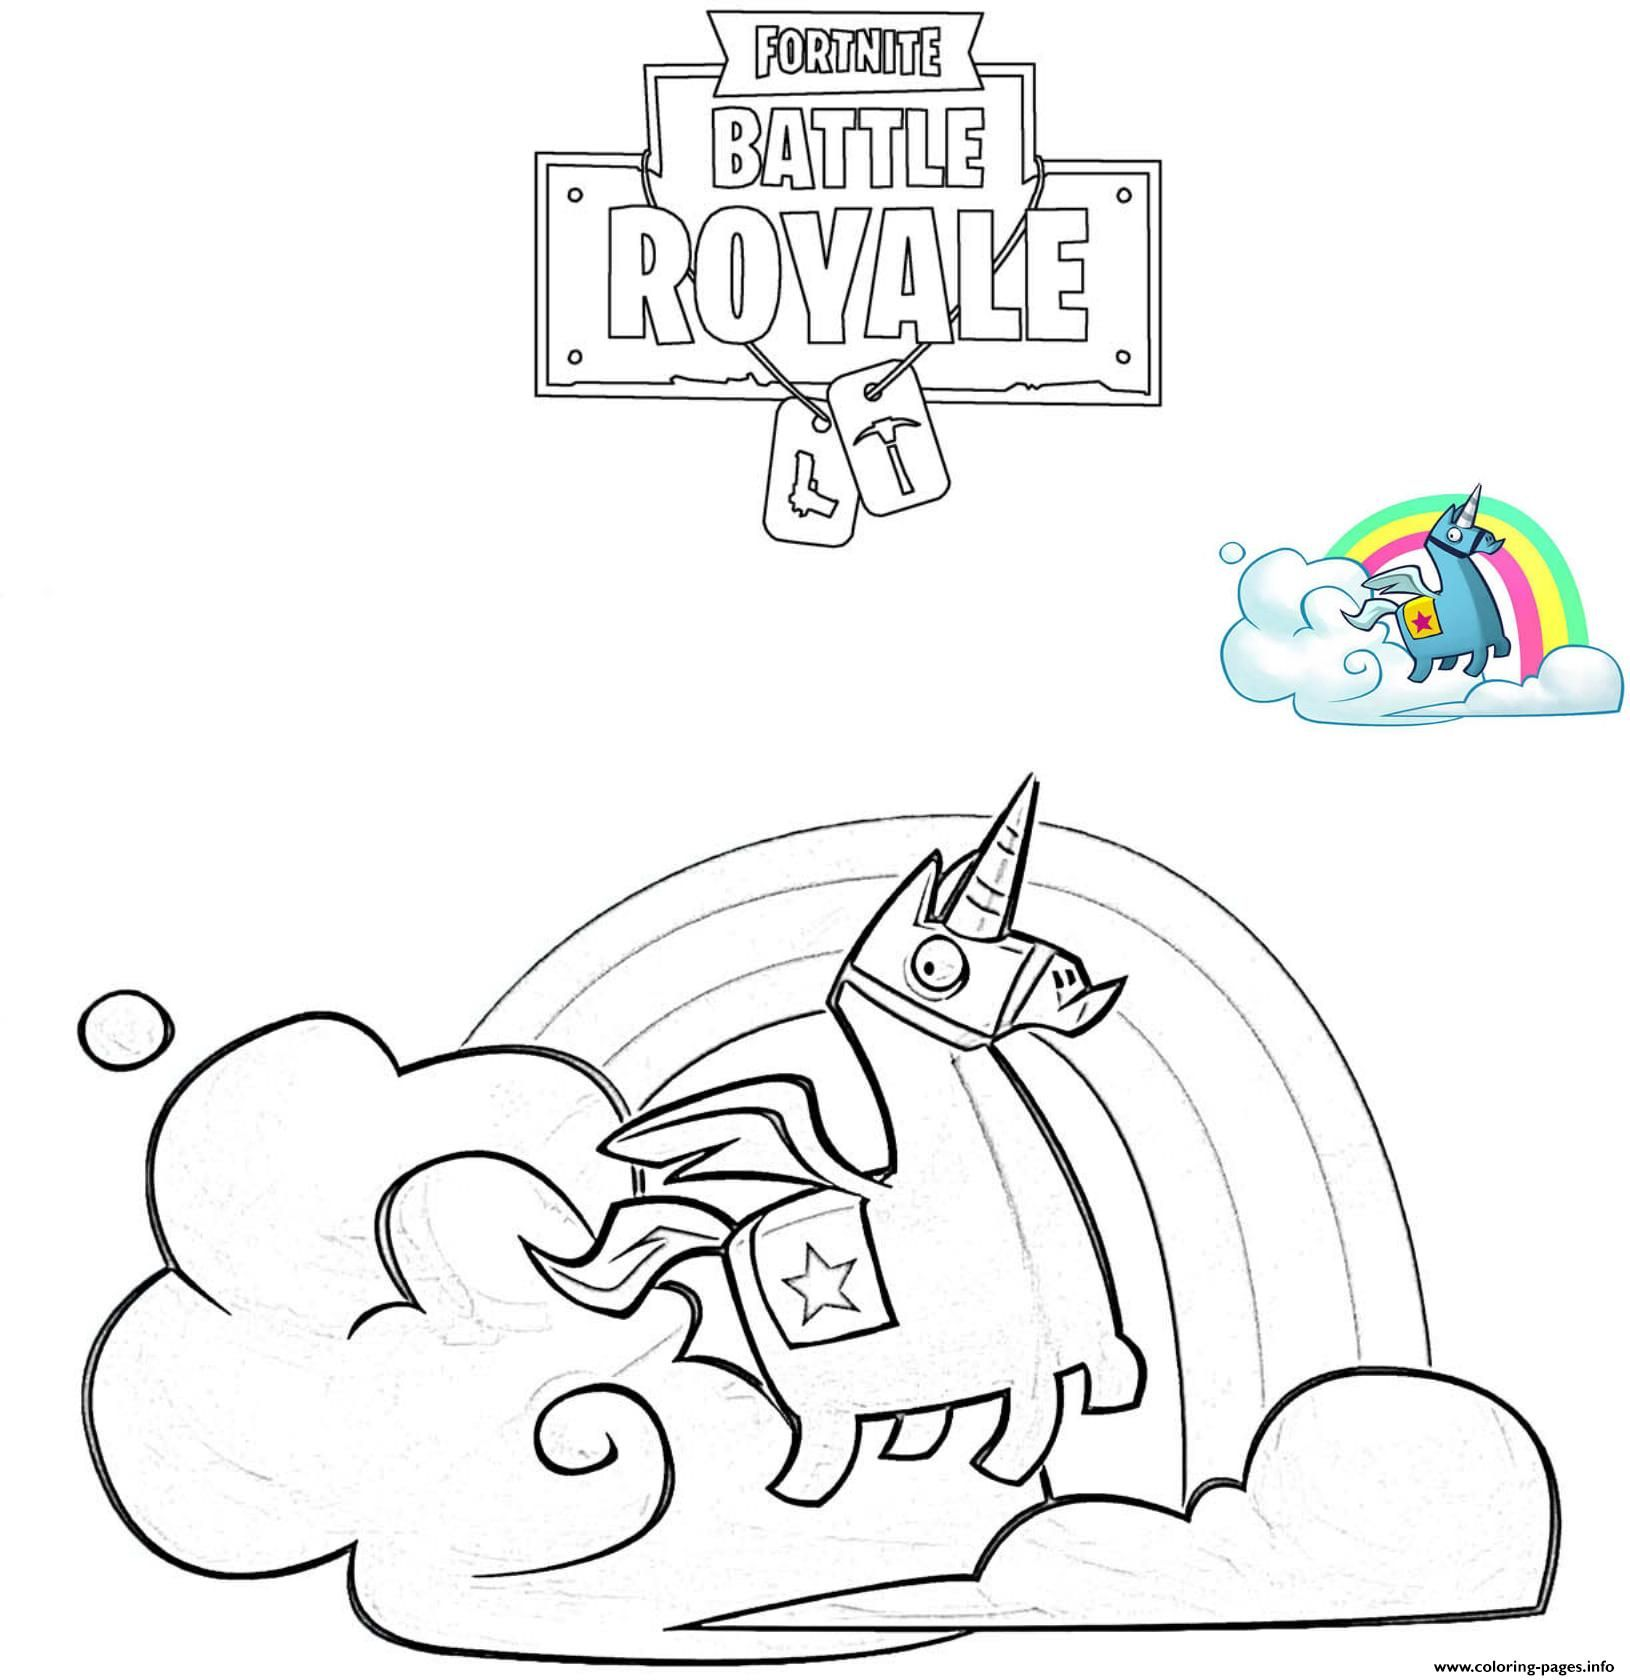 Print Brite Llama Fortnite Coloring Pages With Images Coloring